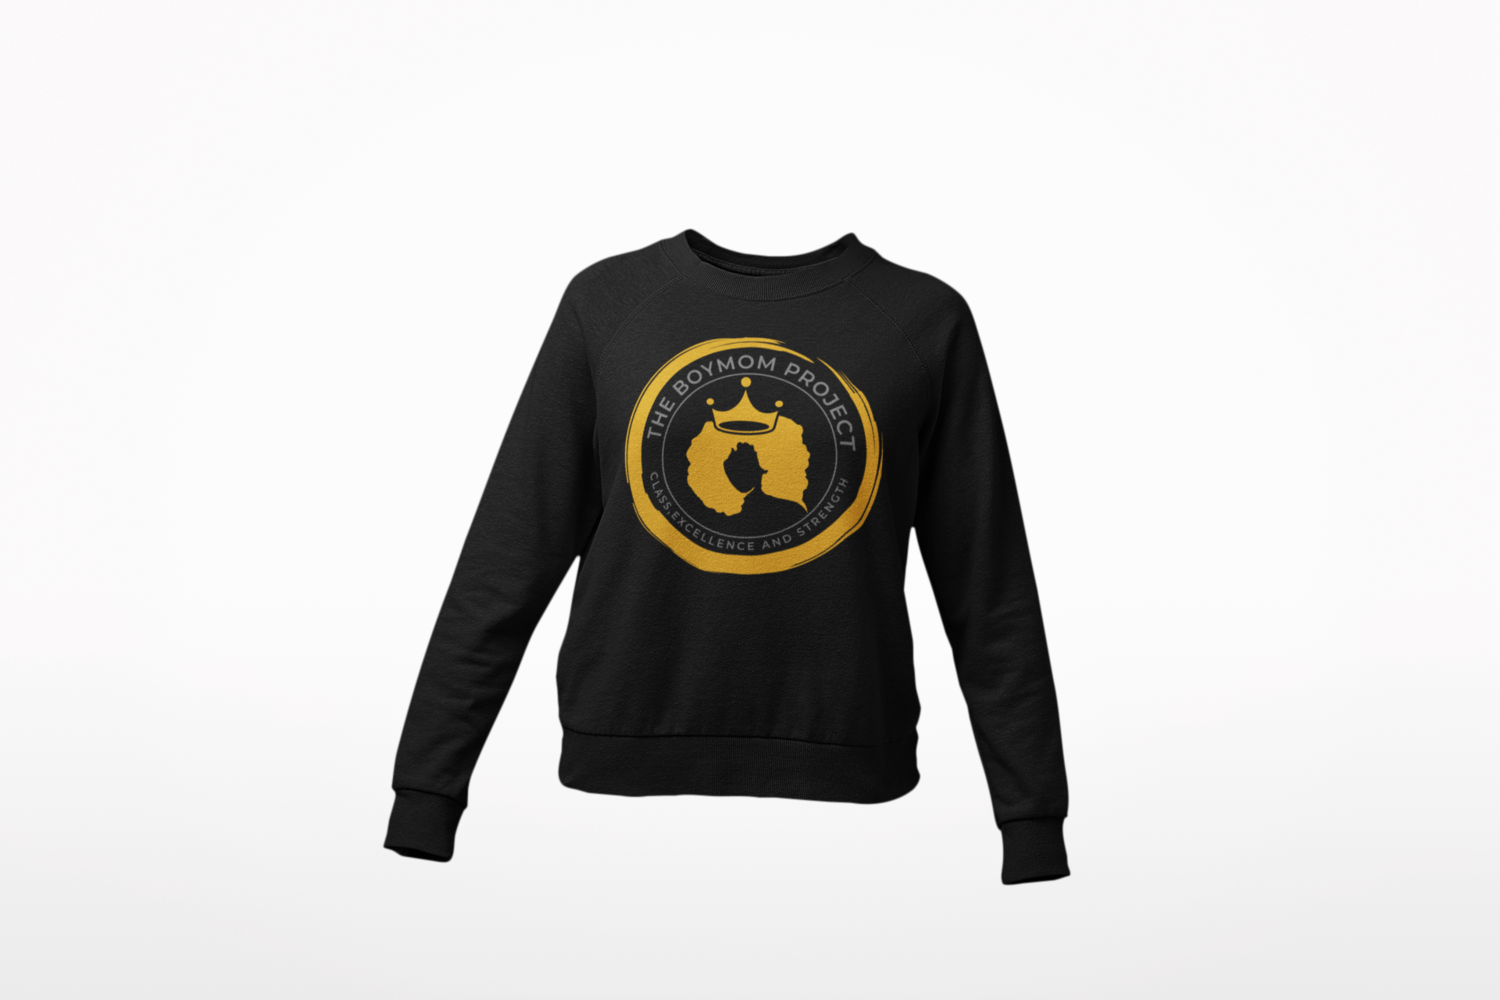 The BOYMOM Project sweatshirt